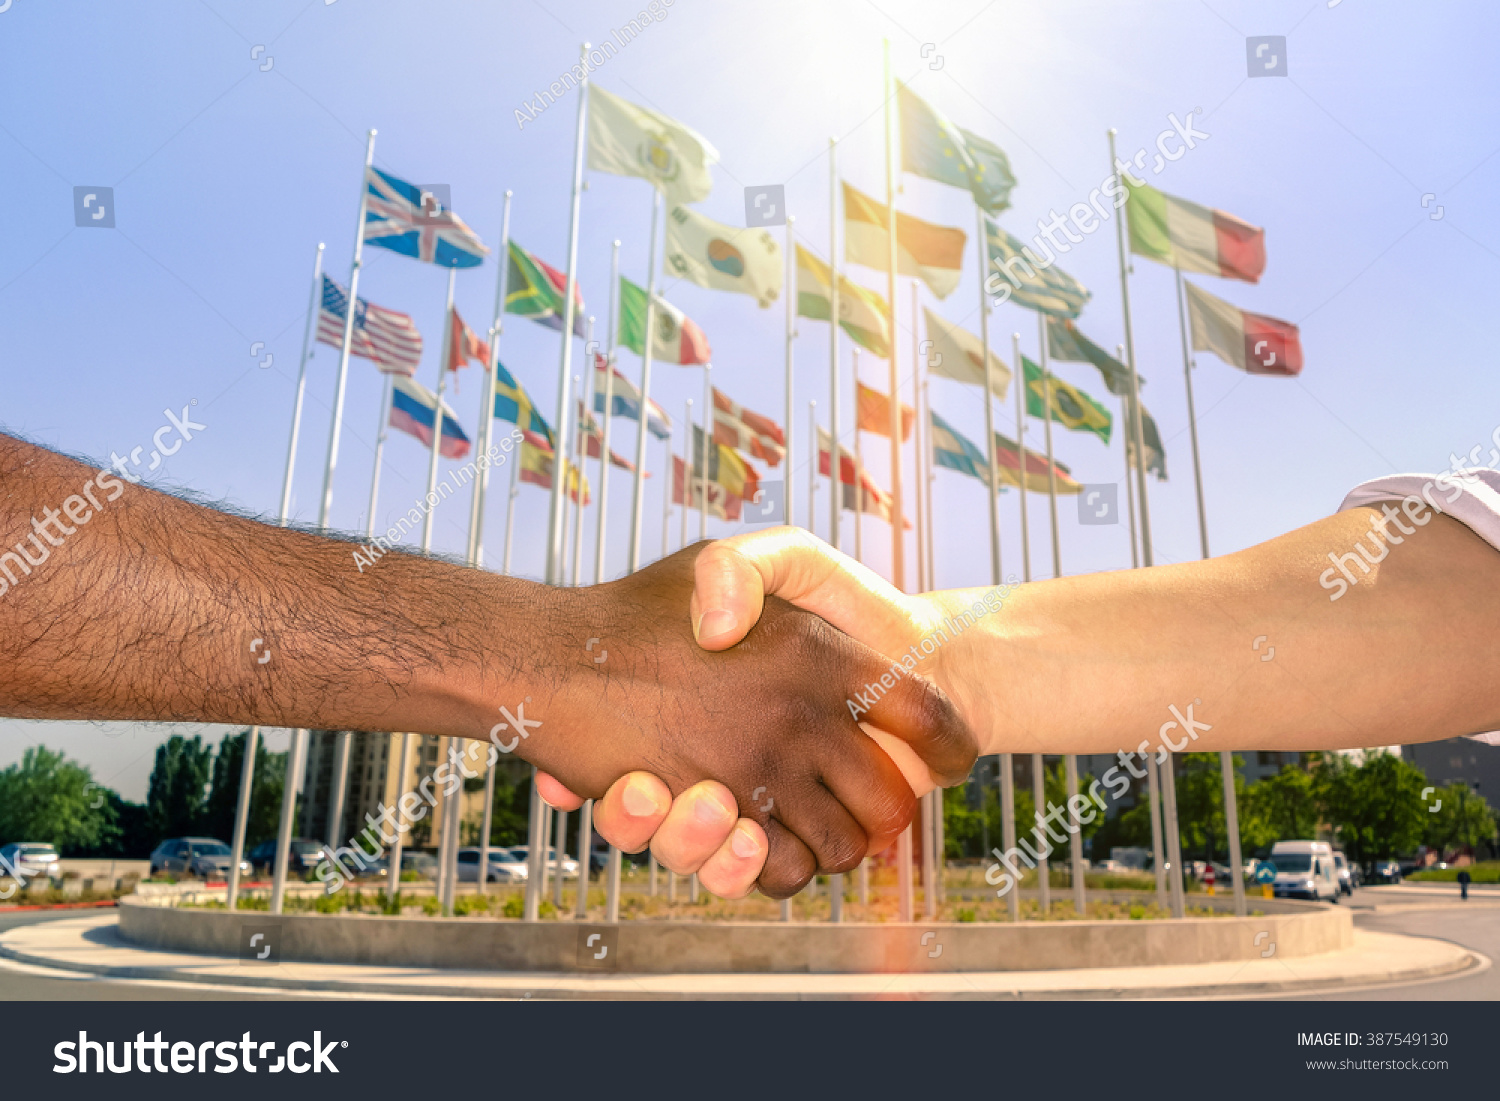 Pics photos desk with flag in background photographic print by - Multiracial Handshake With World Flags Background Black And White Men Hand Shake Team Against Racism